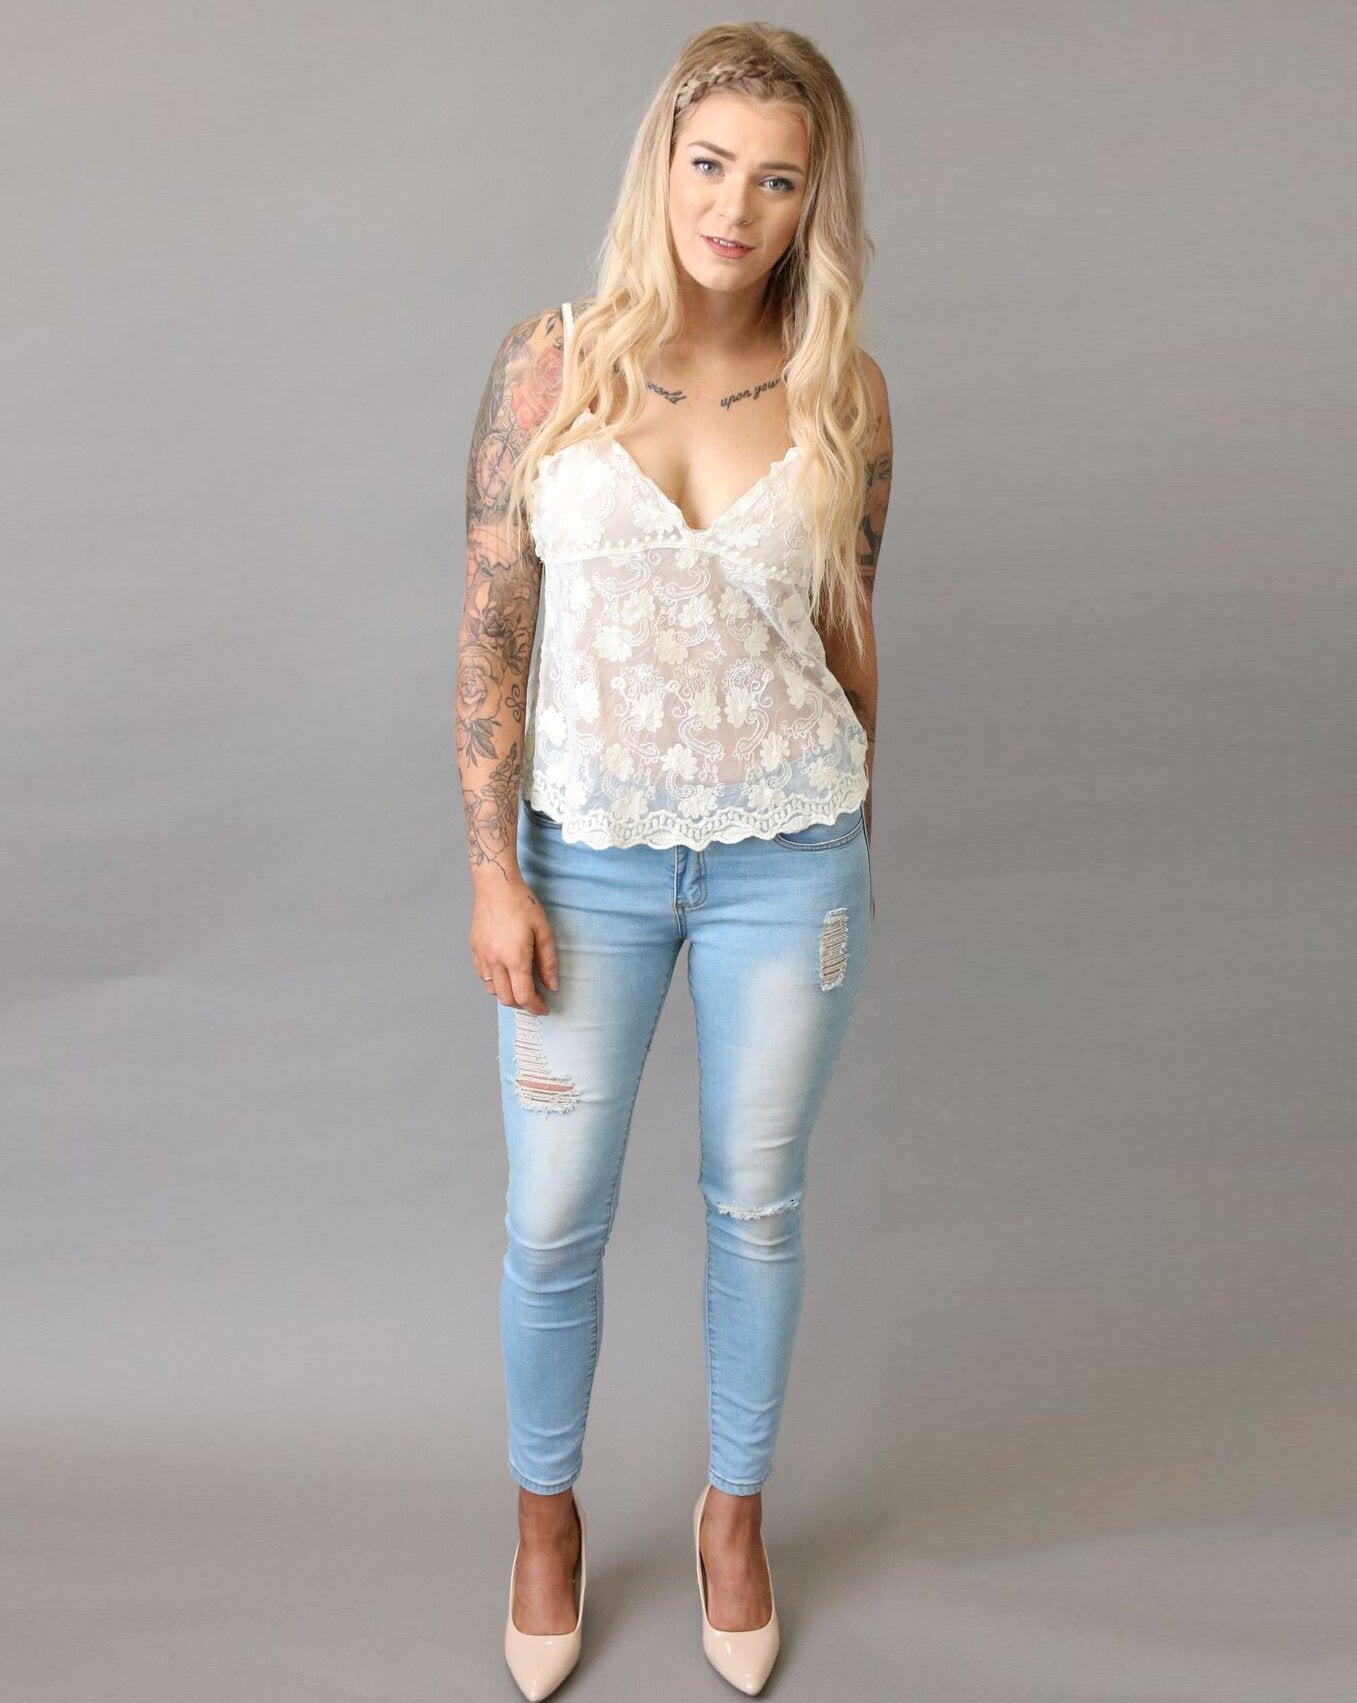 Dainty Flower Cream Lace Cami - Purity Lace Designs